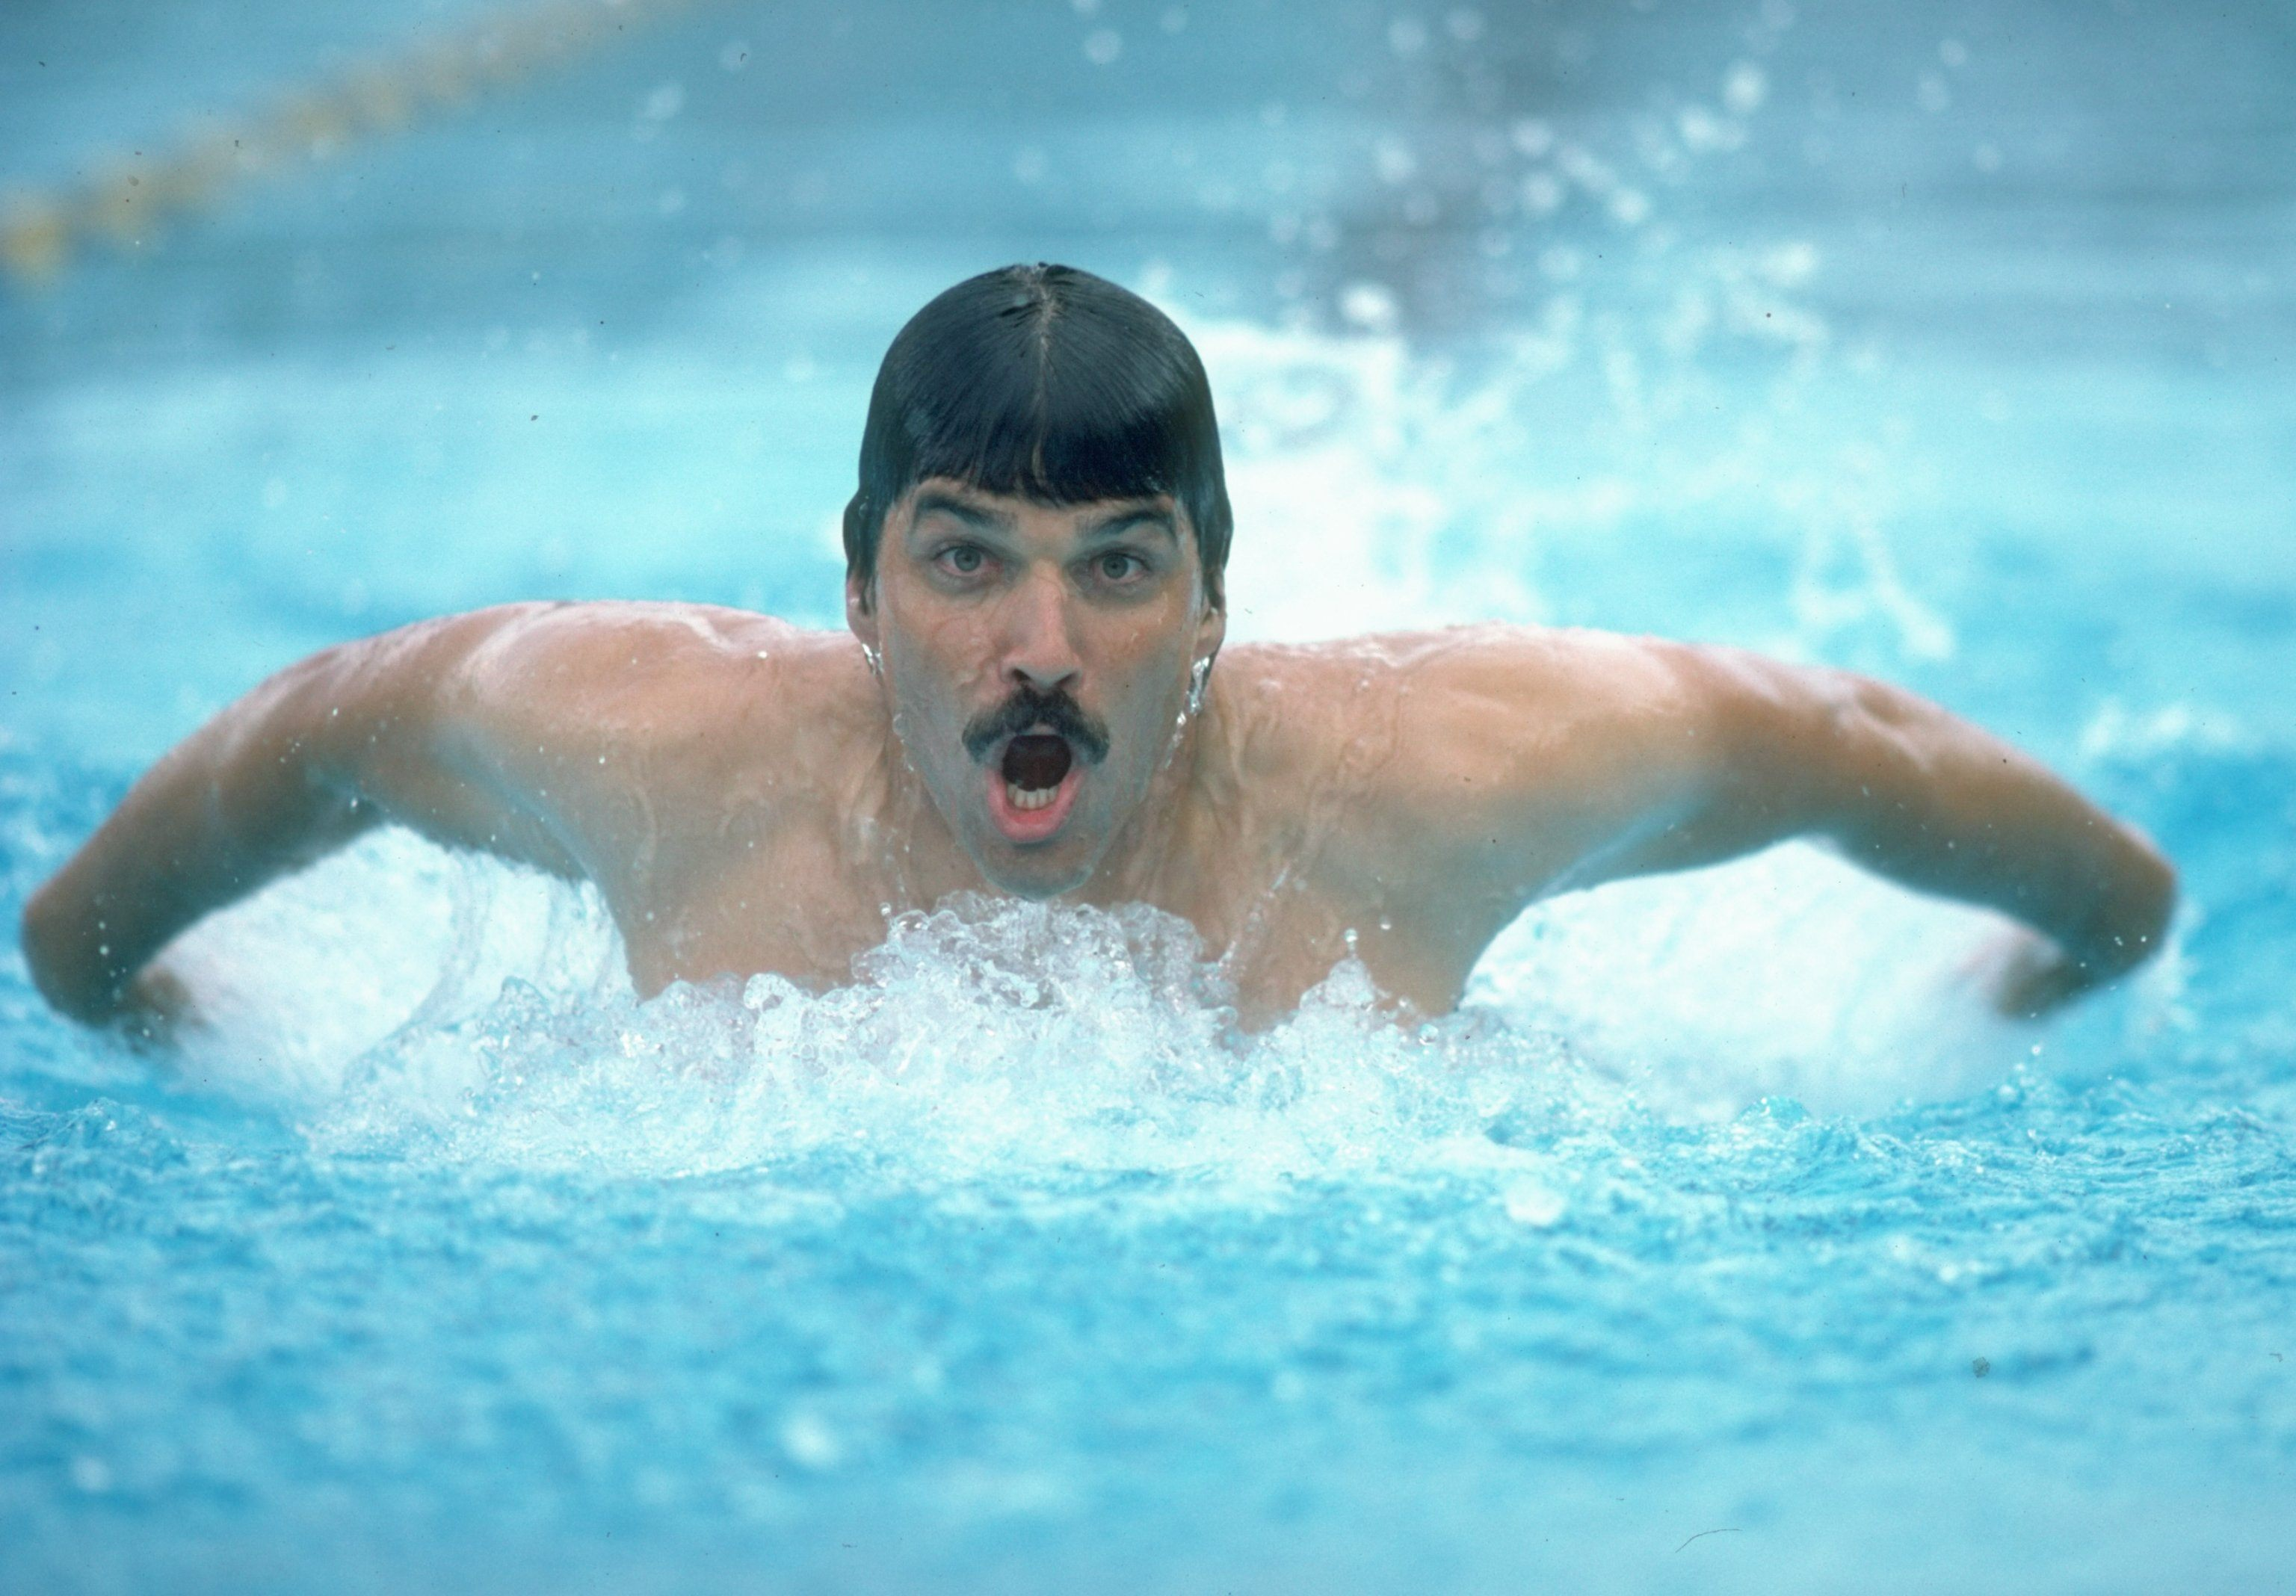 Mark Spitz swimming without goggles or a swim cap